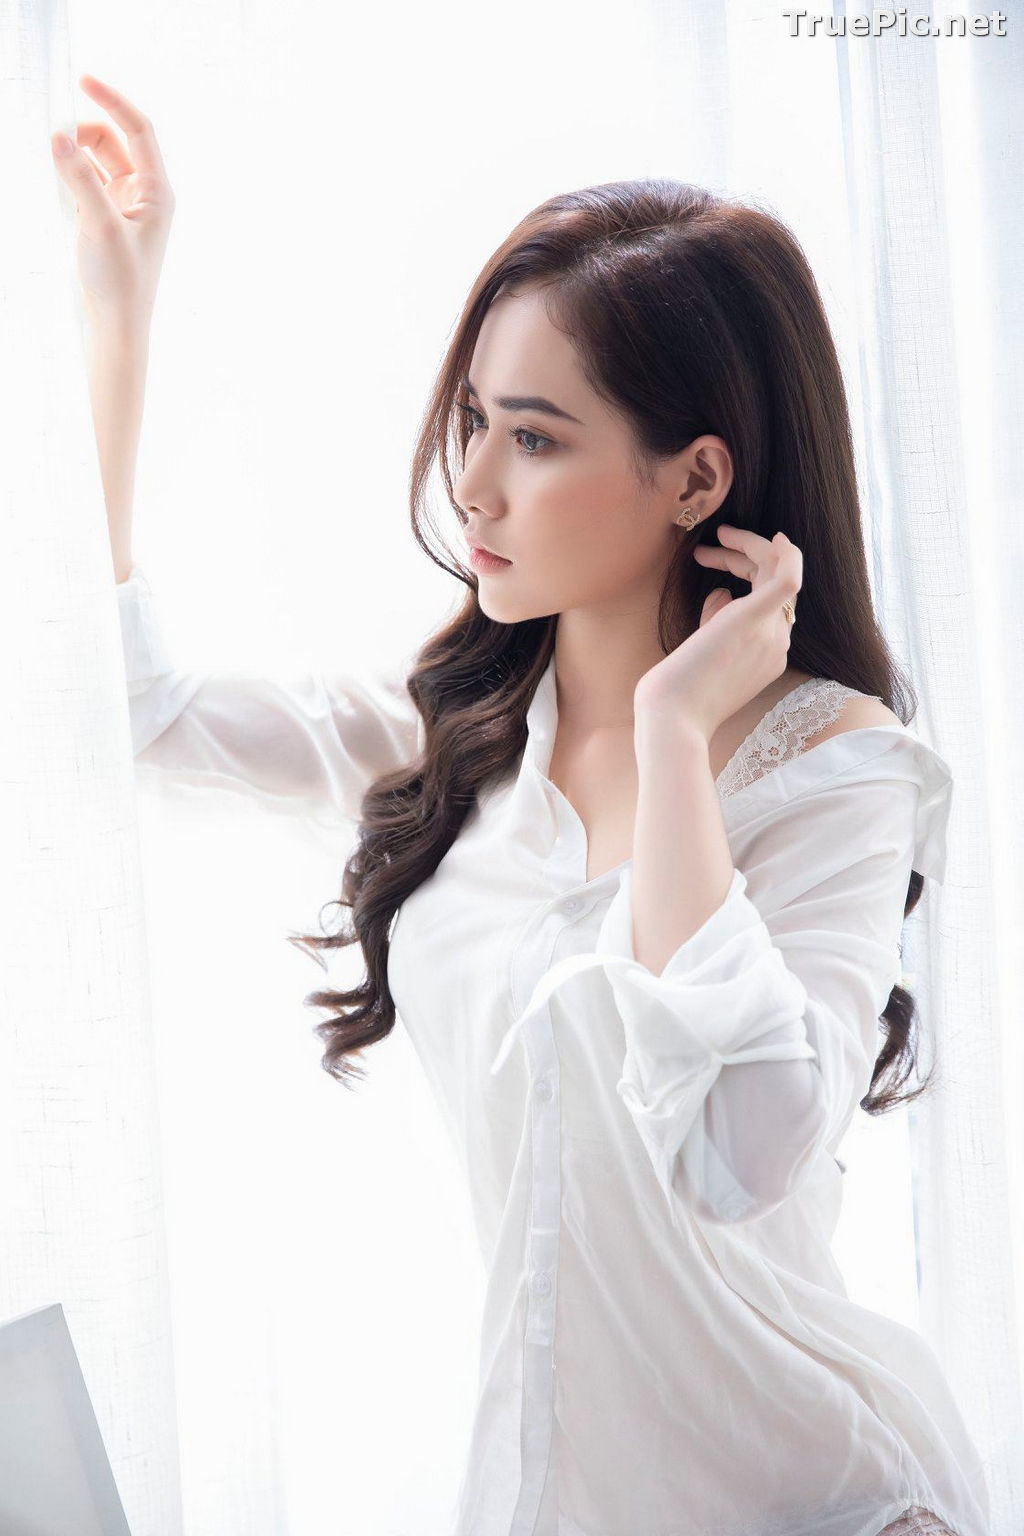 Image Vietnamese Model - Hot Beautiful Girls In White Collection - TruePic.net - Picture-7